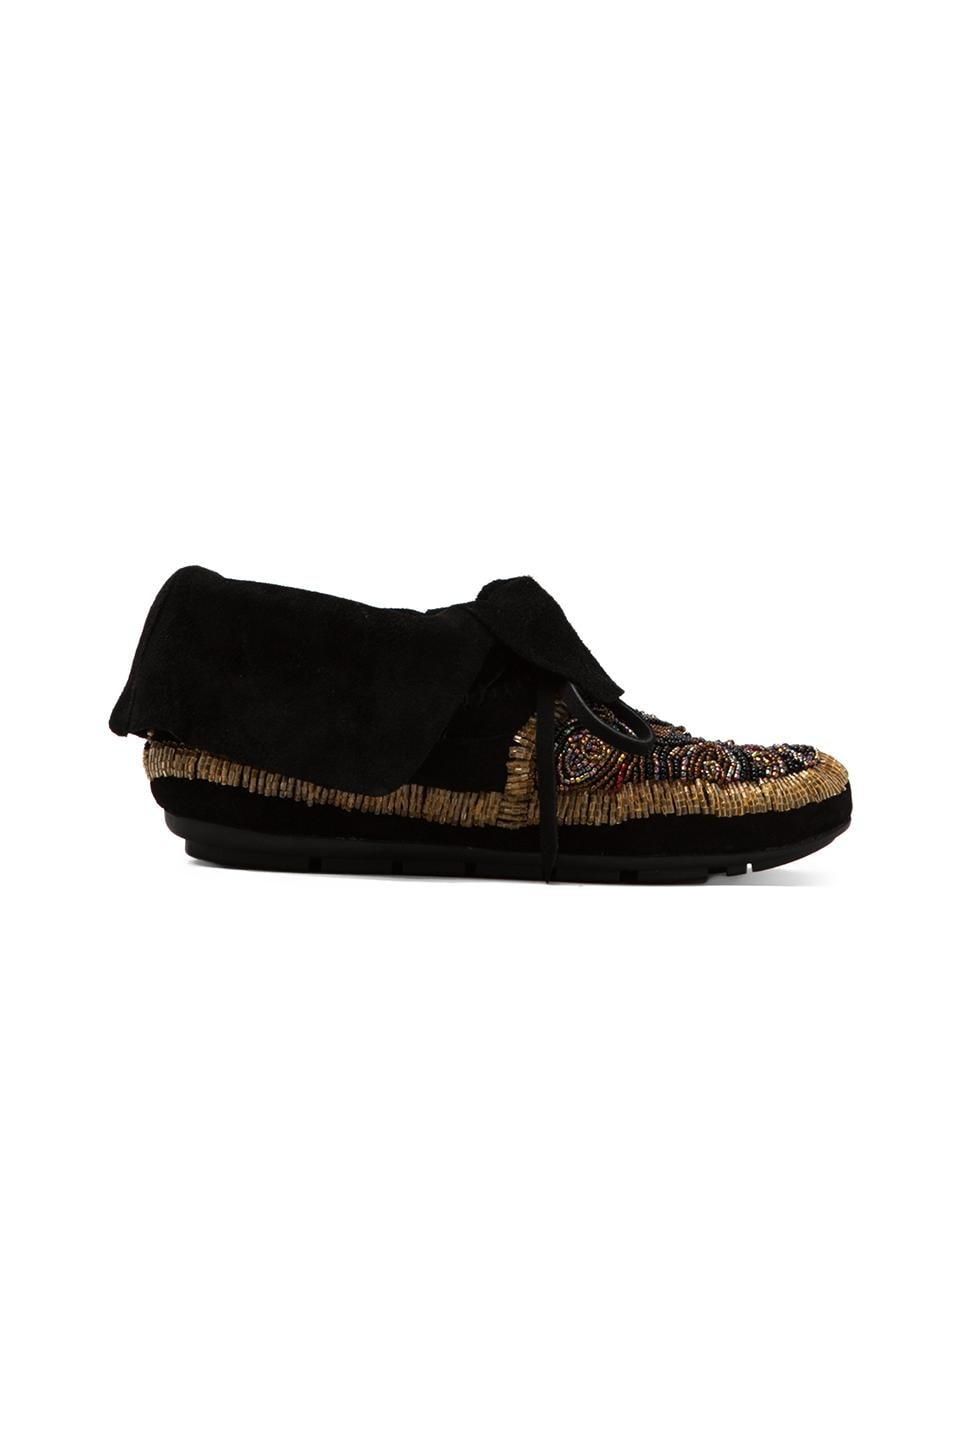 House of Harlow Mallory Moccasin in Black